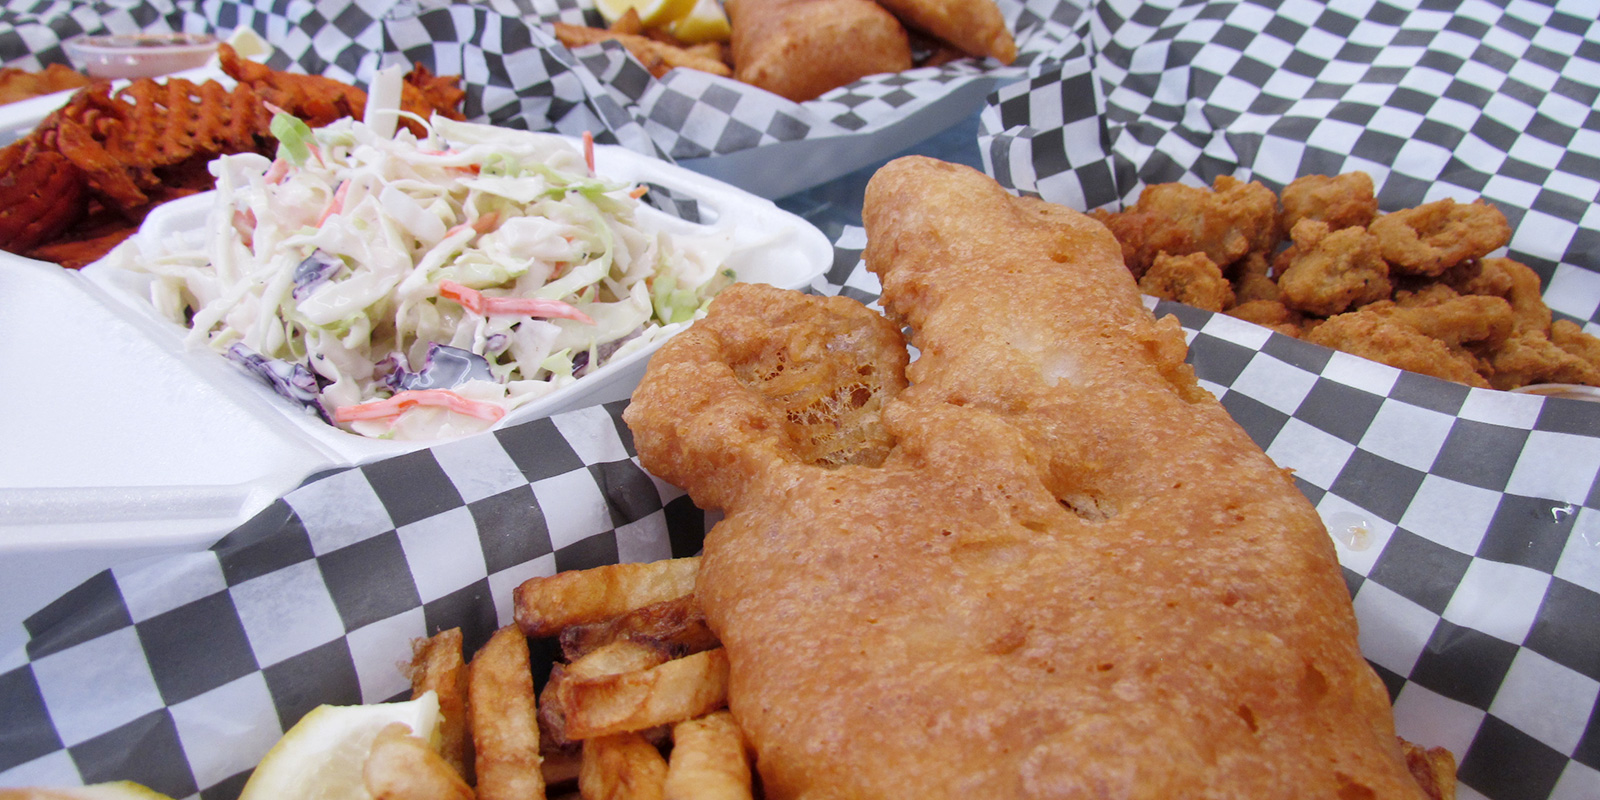 Want to know more about Fran's Fish & Chips?